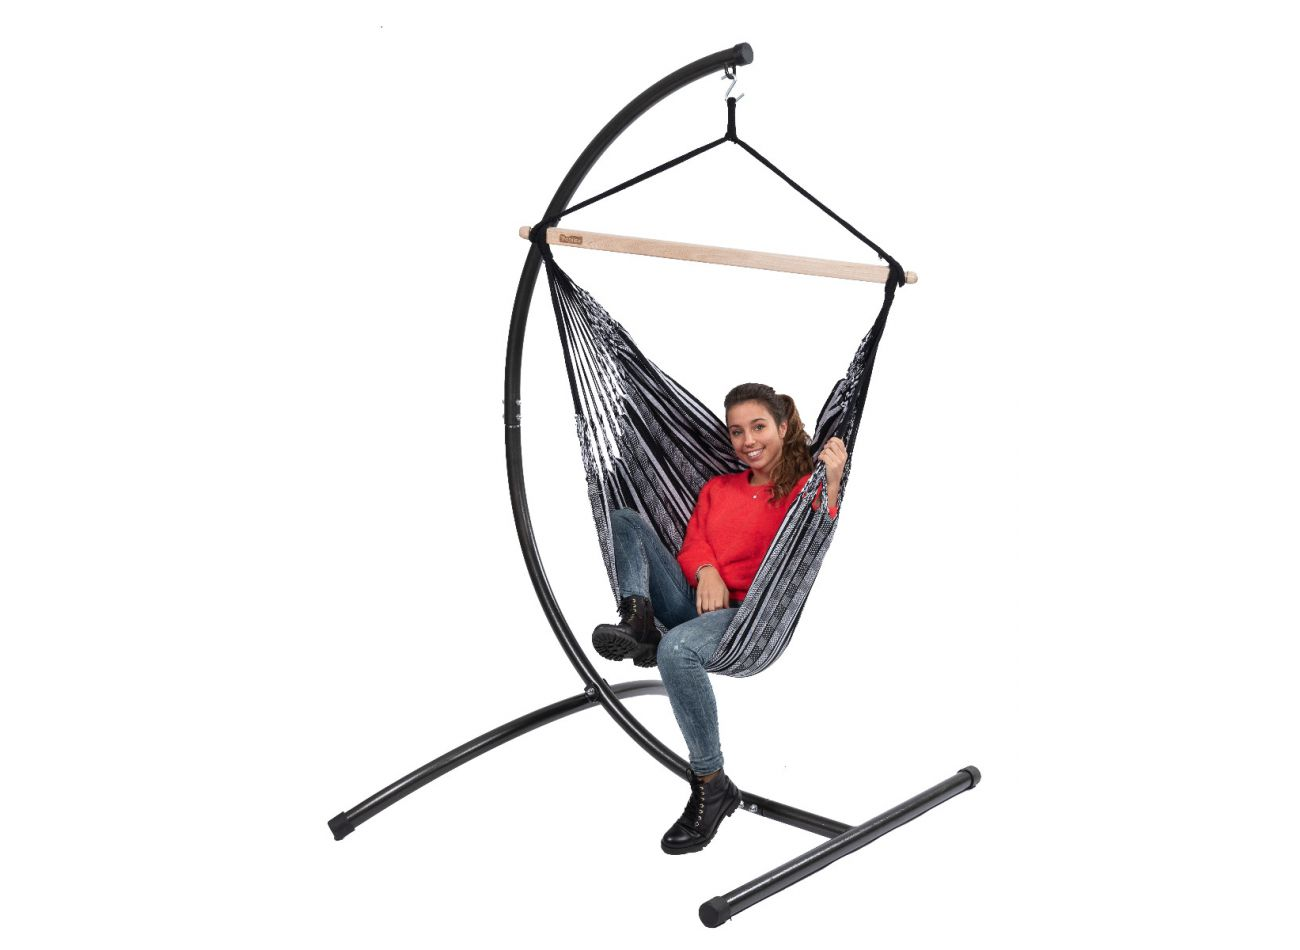 Hanging Chair Stand Elegance Second Chance